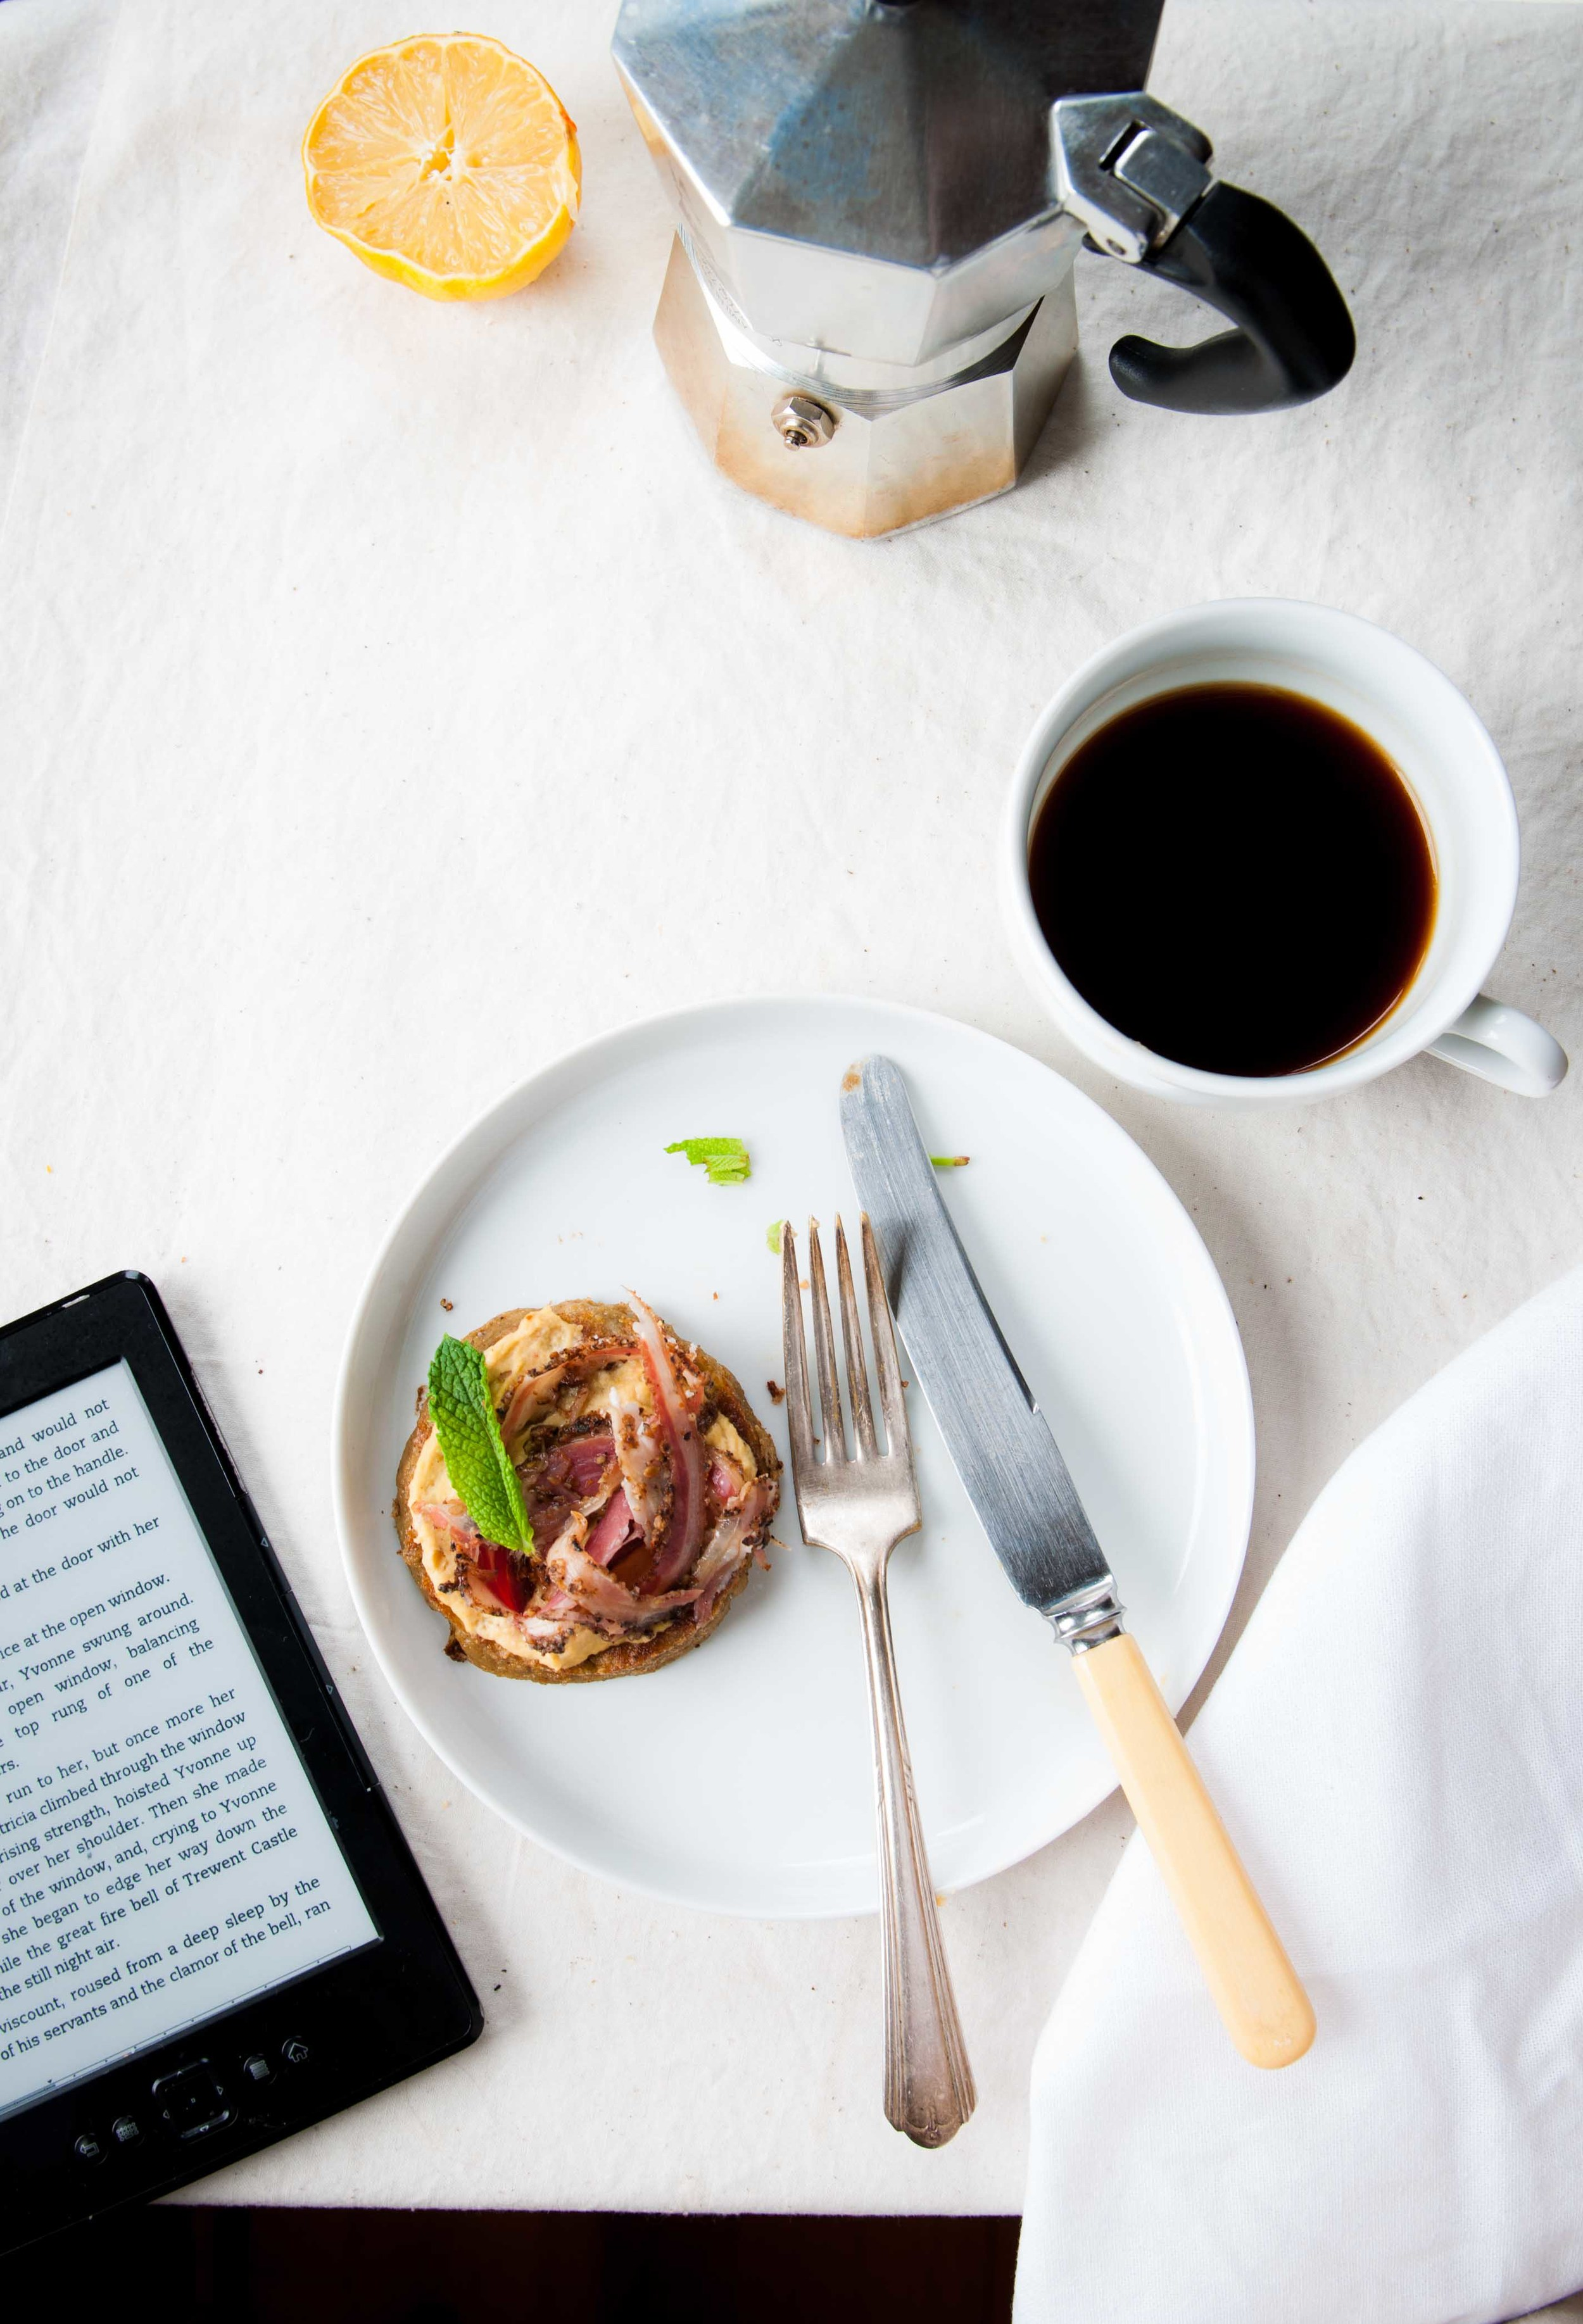 I love a good read with my morning bite! Rice and Sprouted mung bean crumpet tartines with coffee.